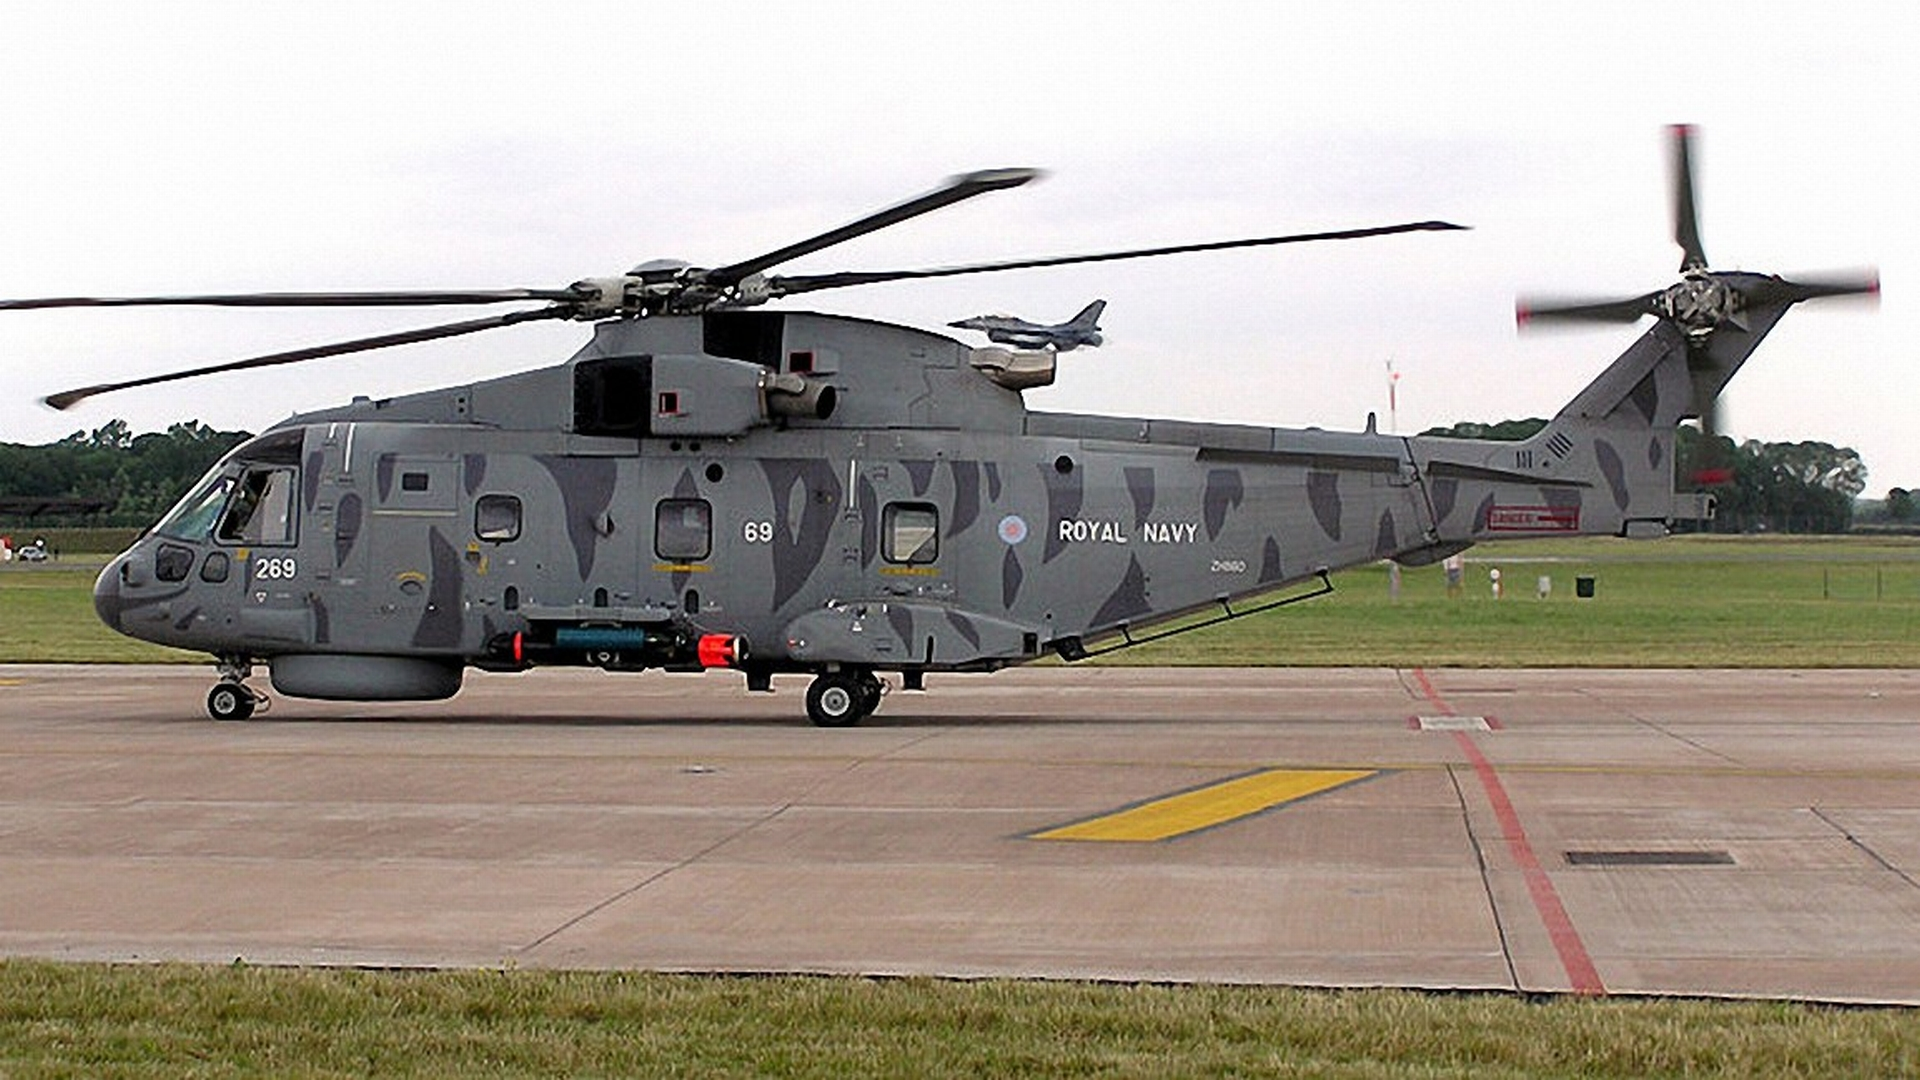 Military Helicopter Wallpaper 1920x1080 Military Helicopter 1920x1080